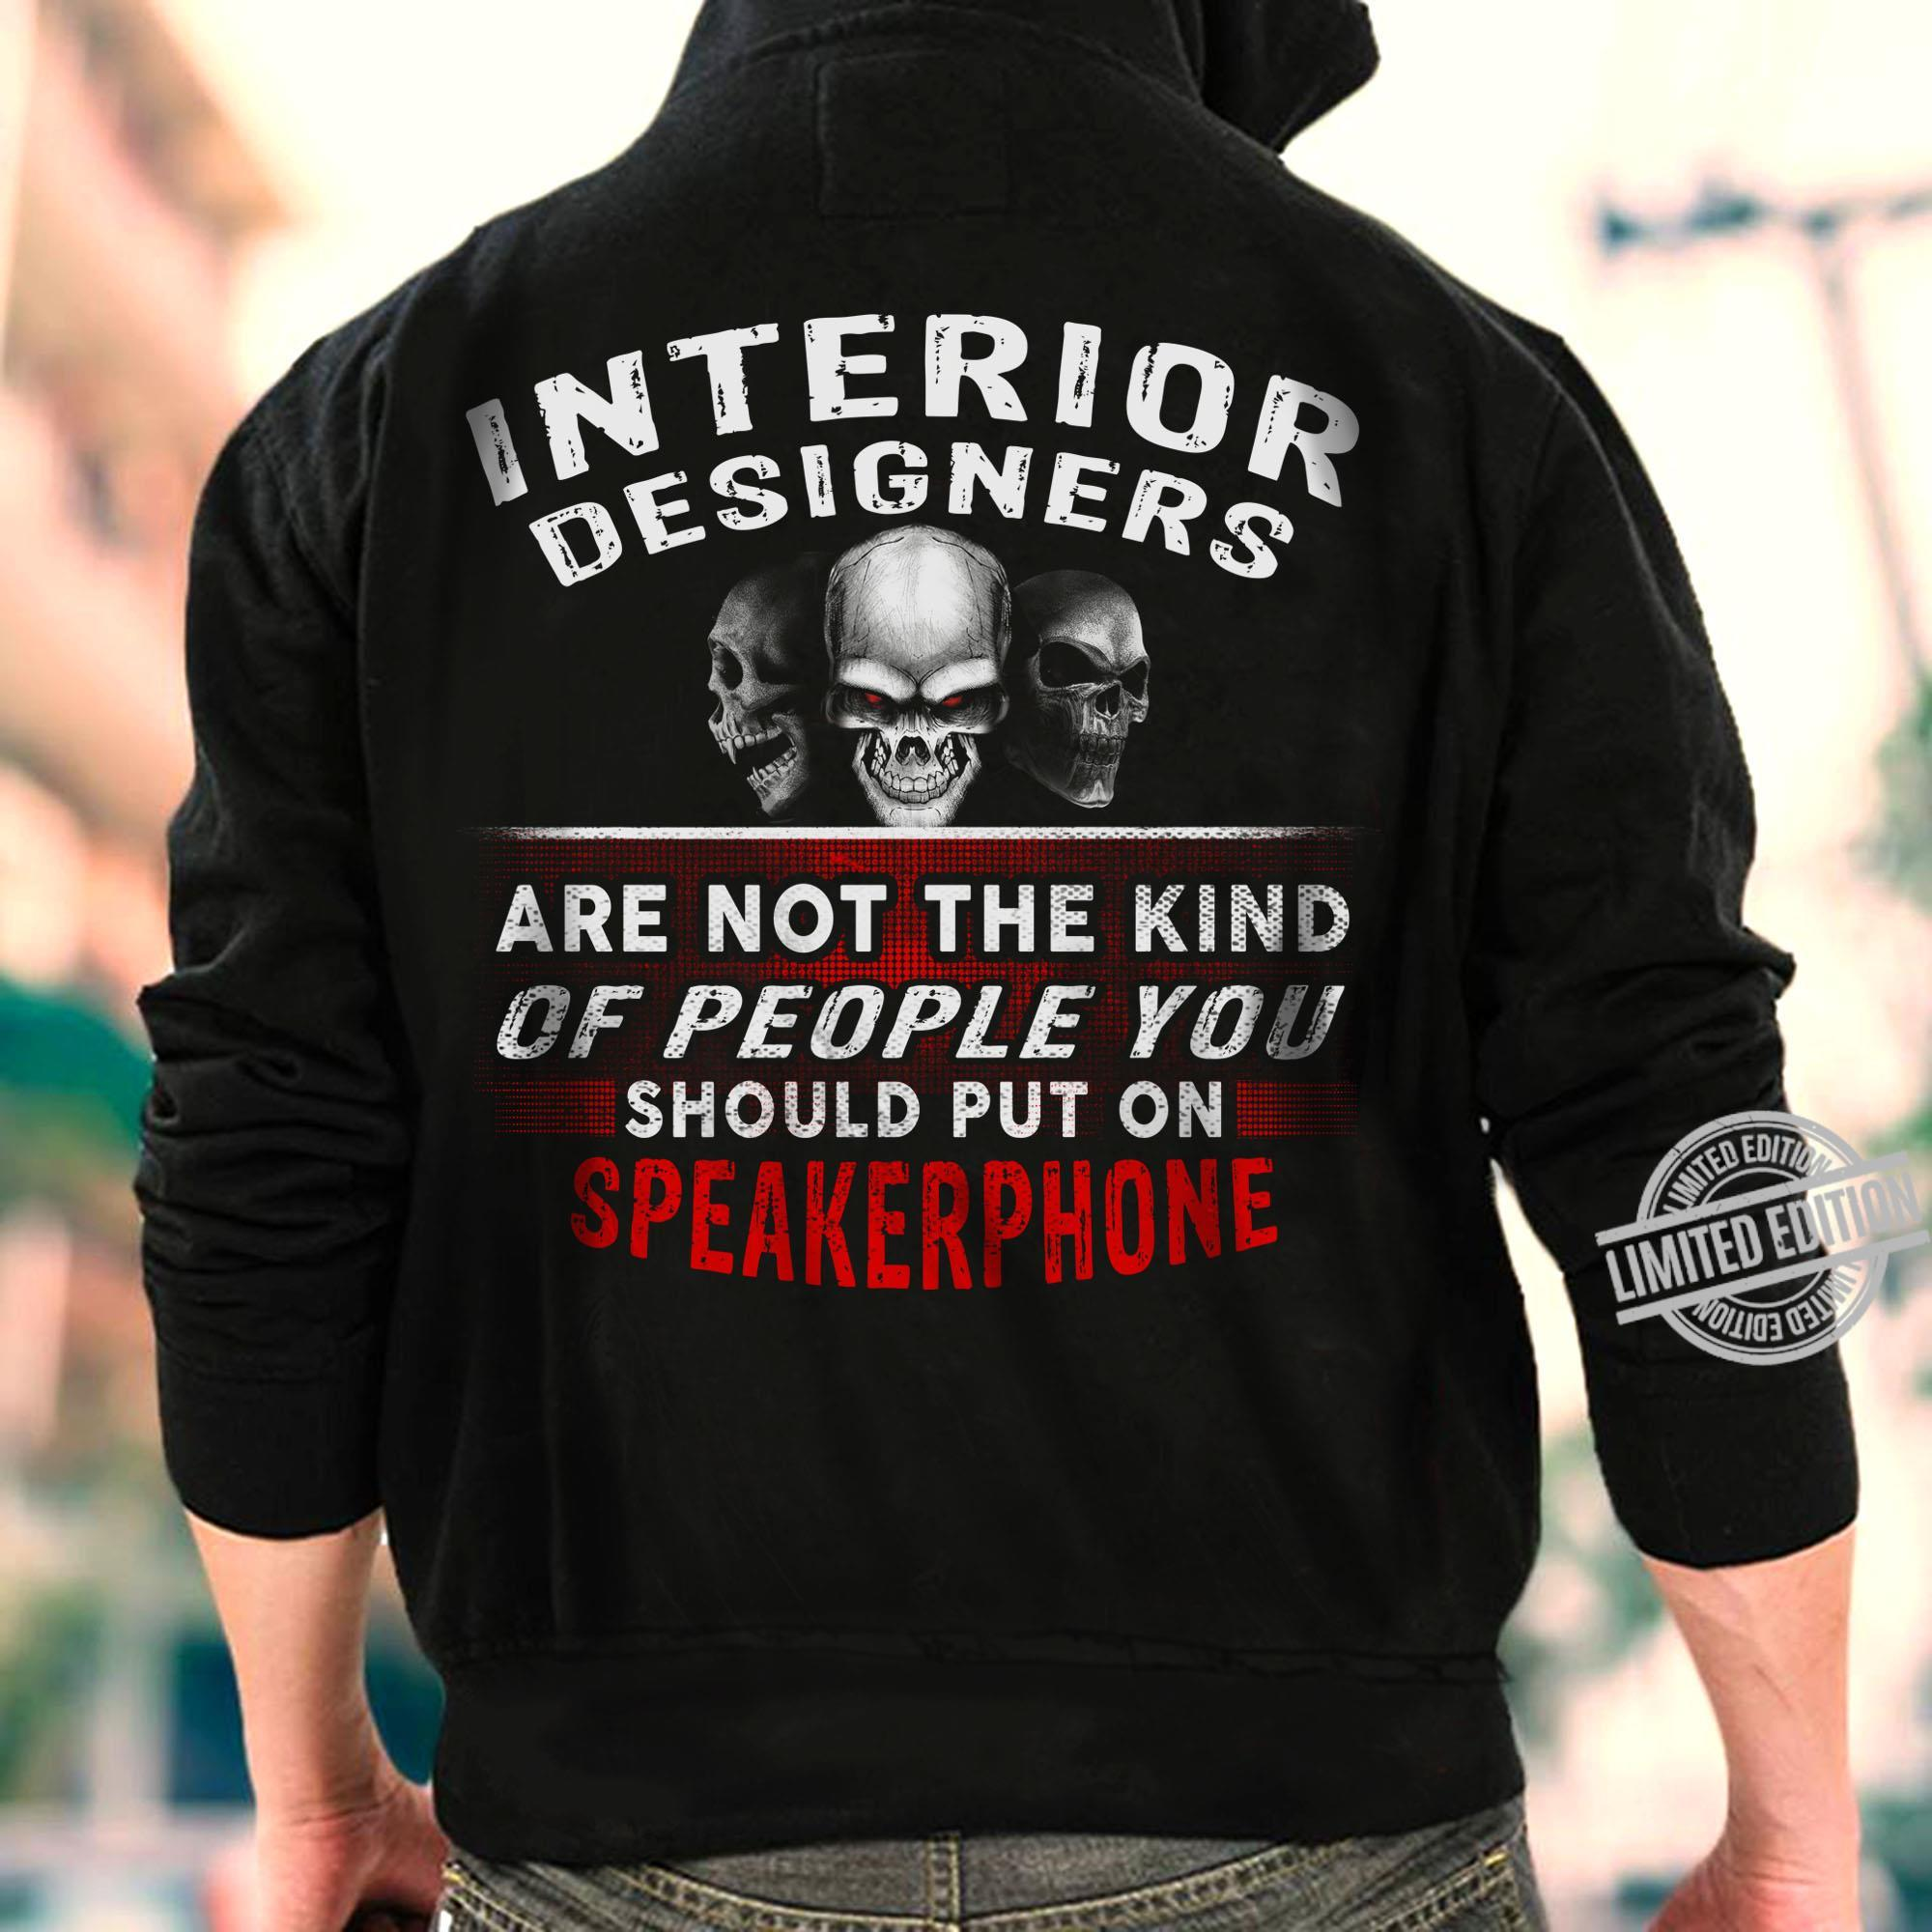 Interior Designers Are Not The Kind Should Put On Speakphone Shirt